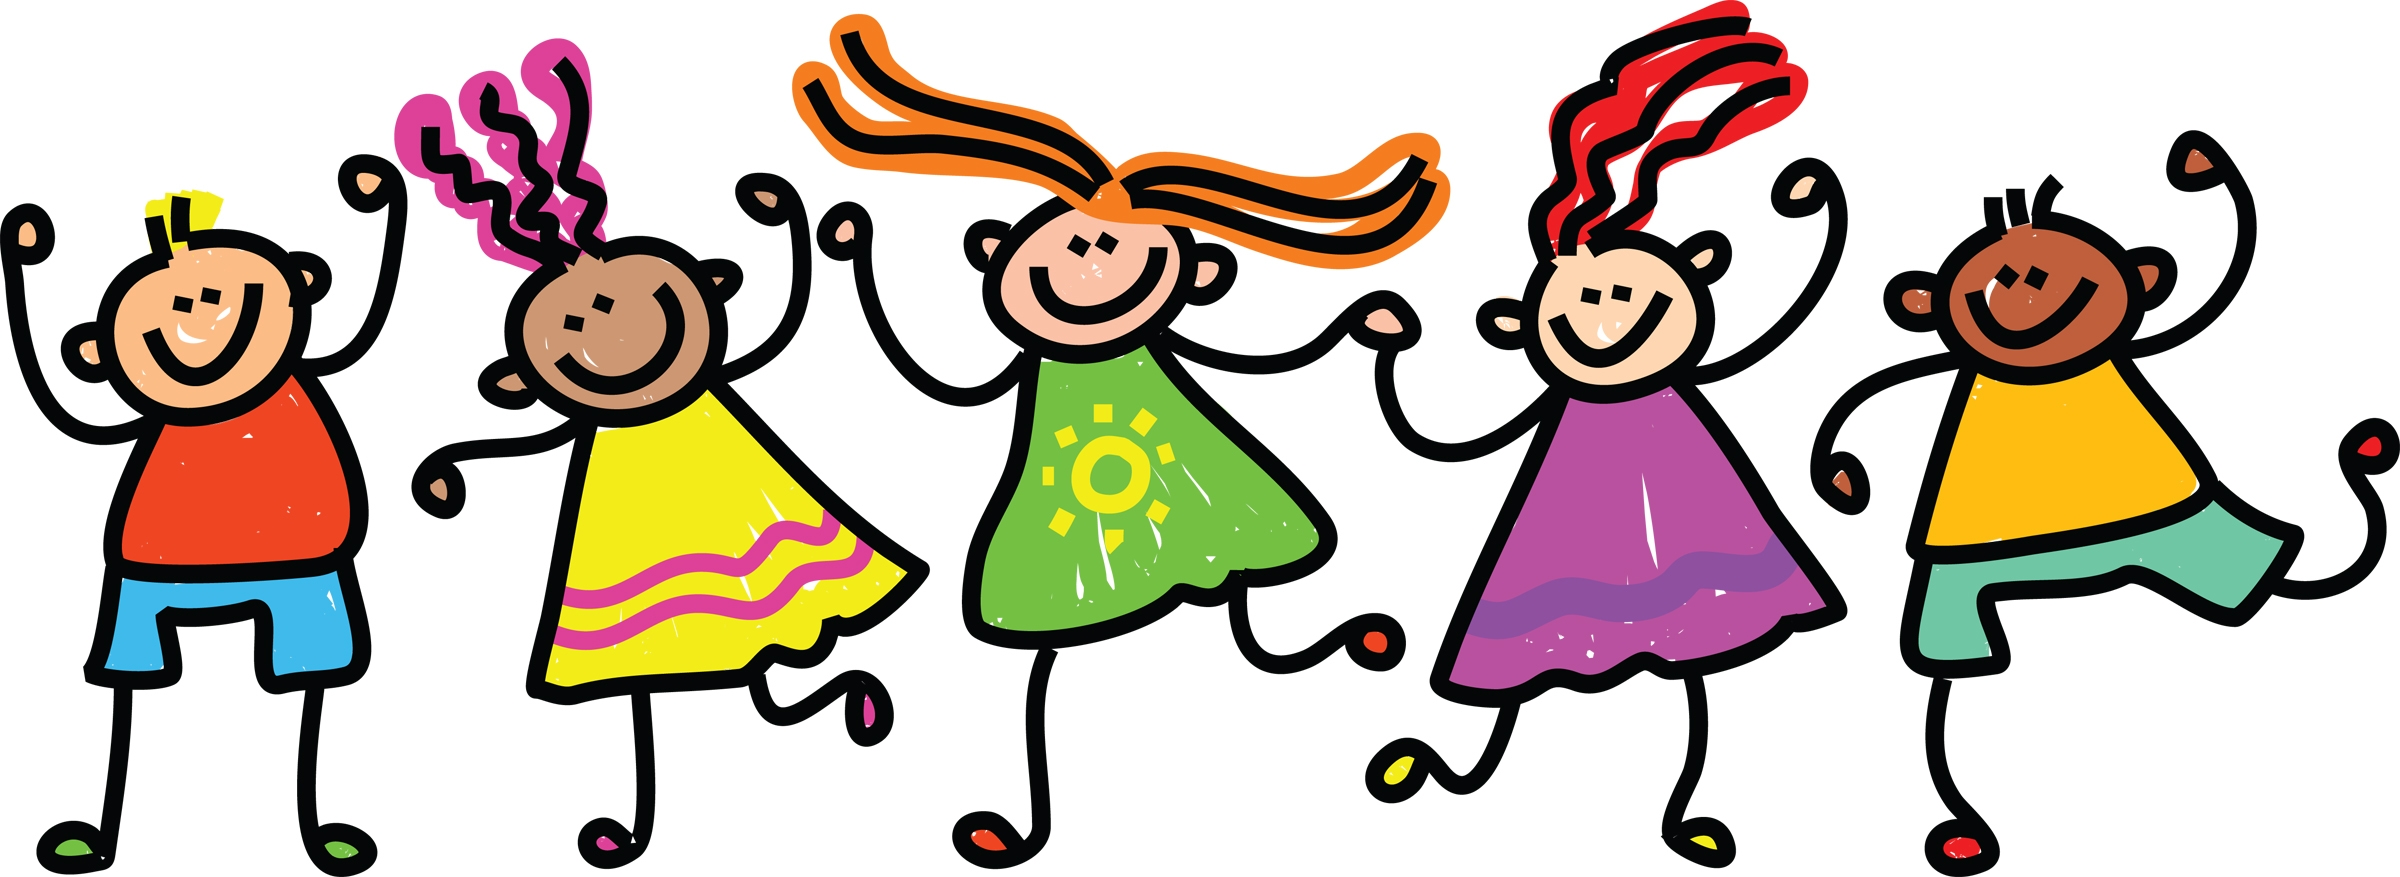 2400x877 Best Of Dancing Clipart Collection